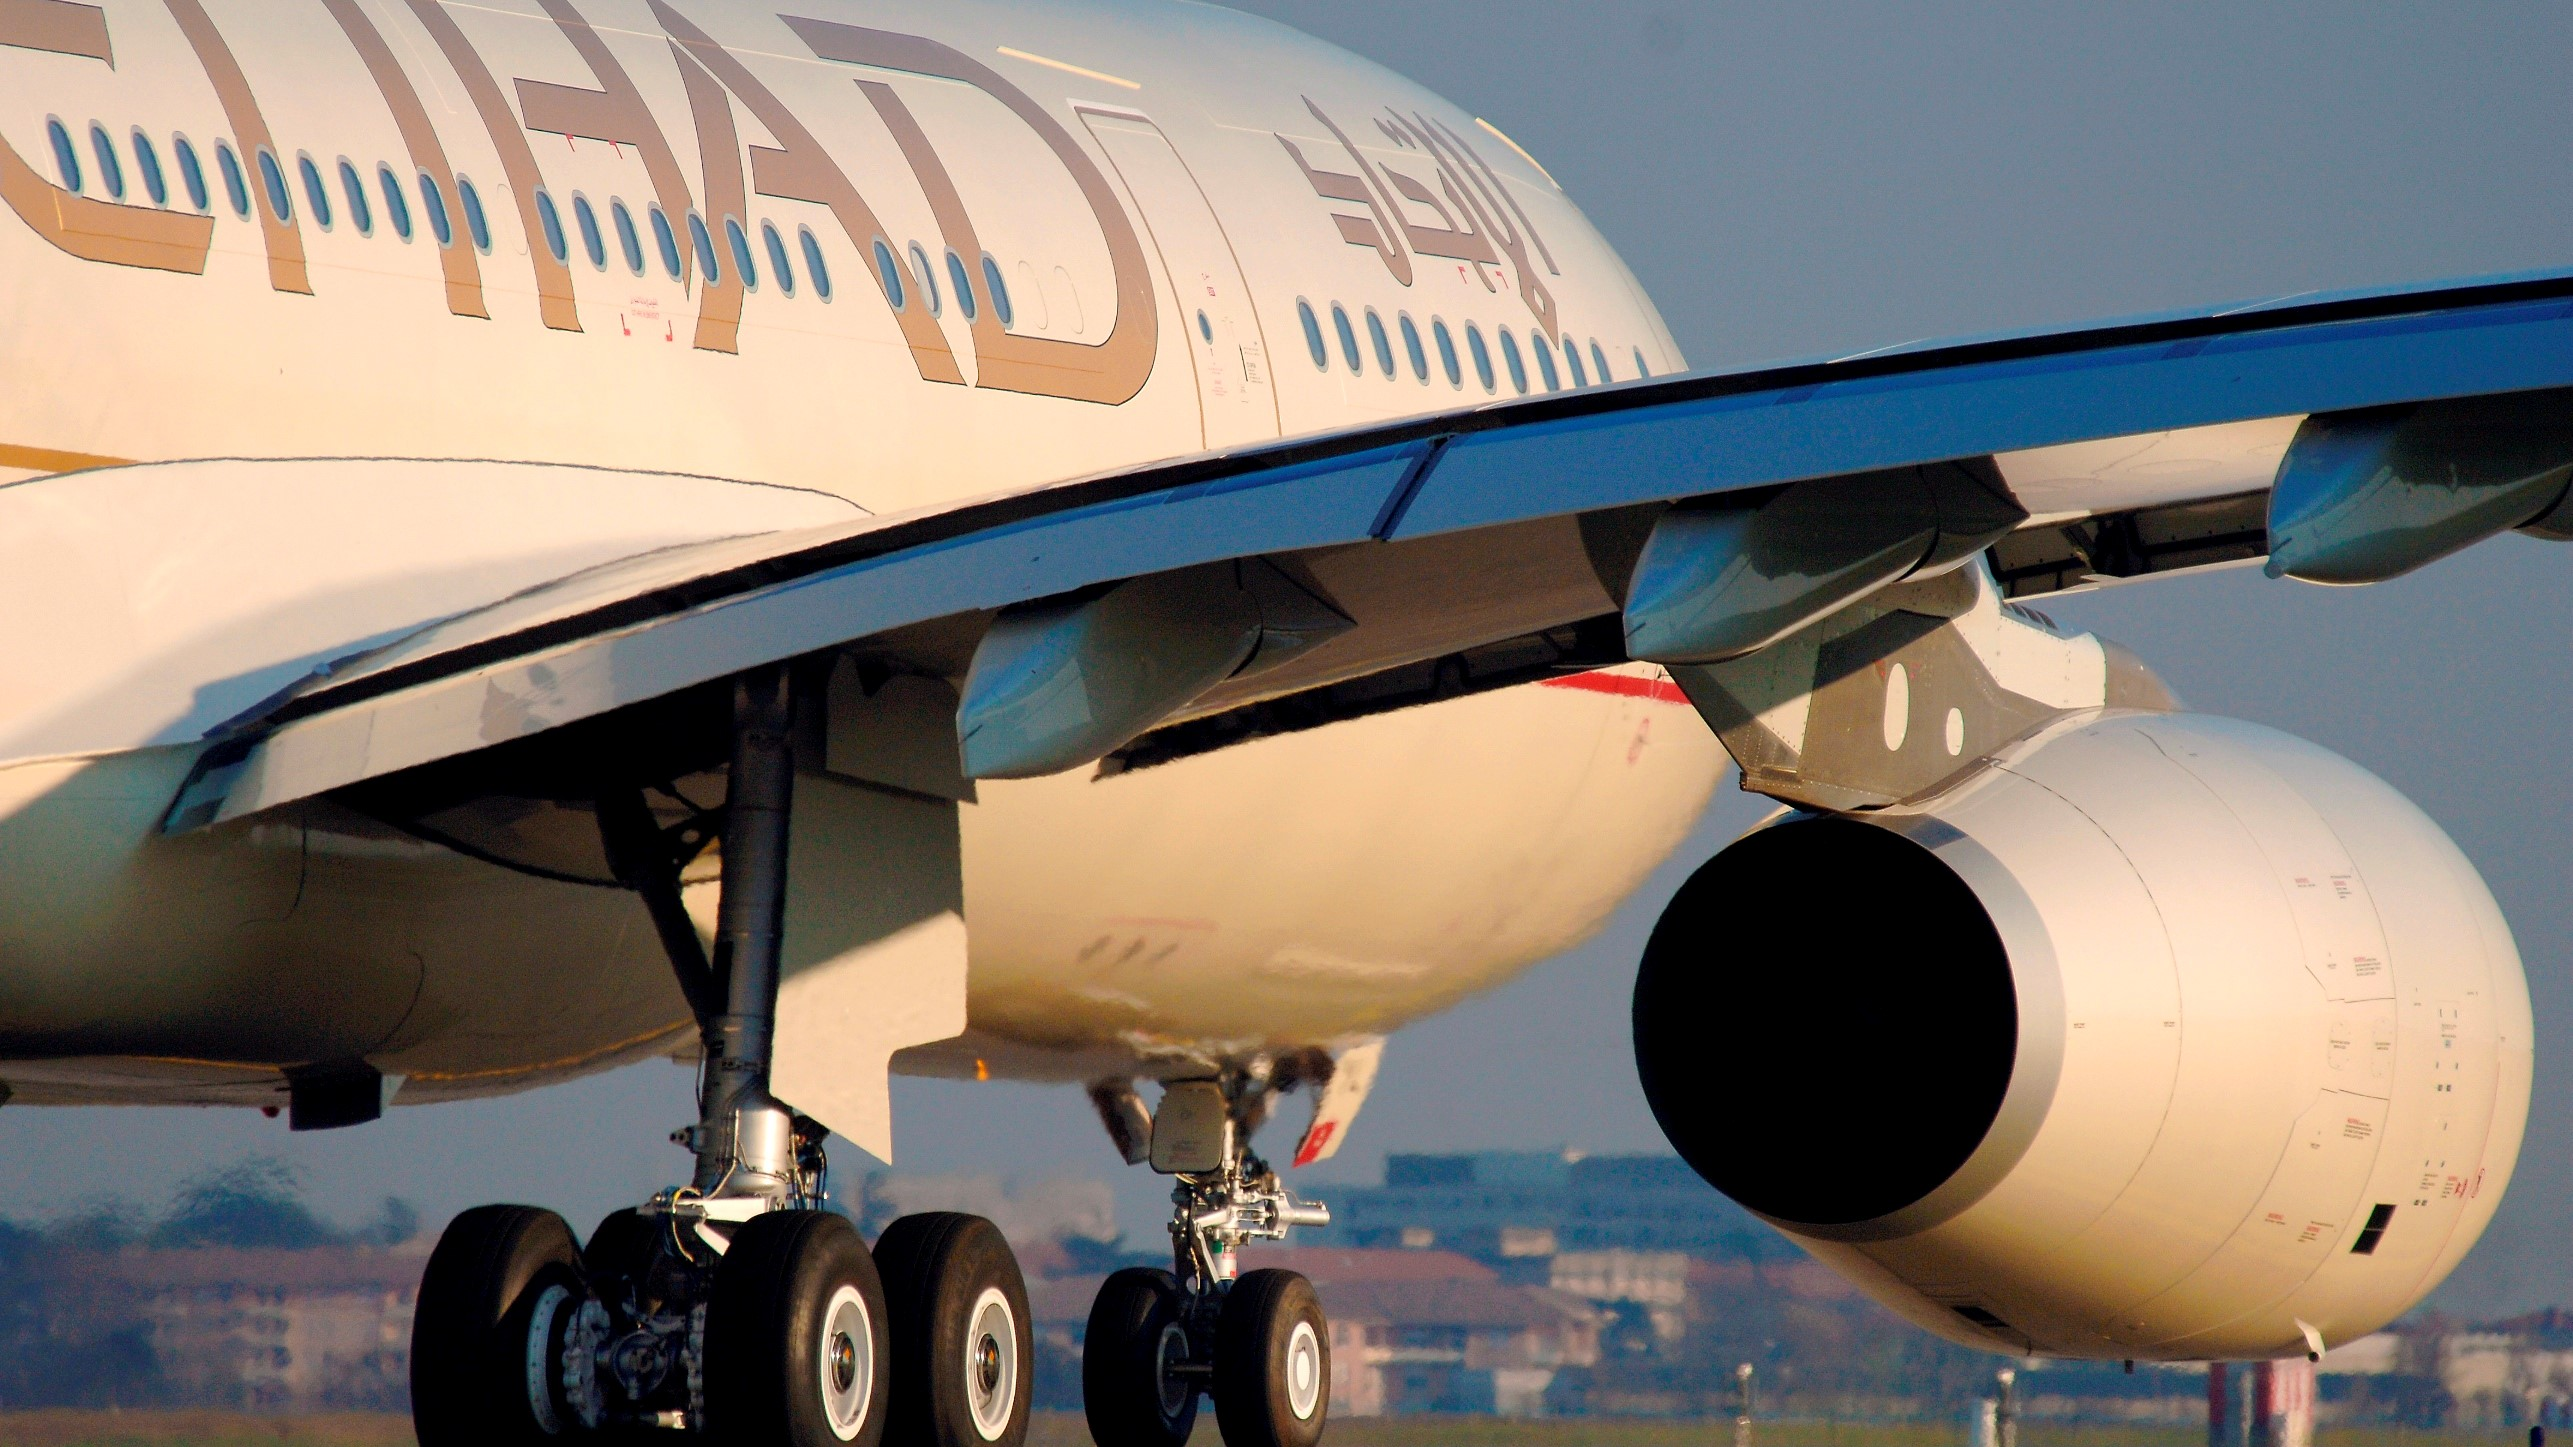 Etihad Airways reporting third consecutive year of loss in 2018